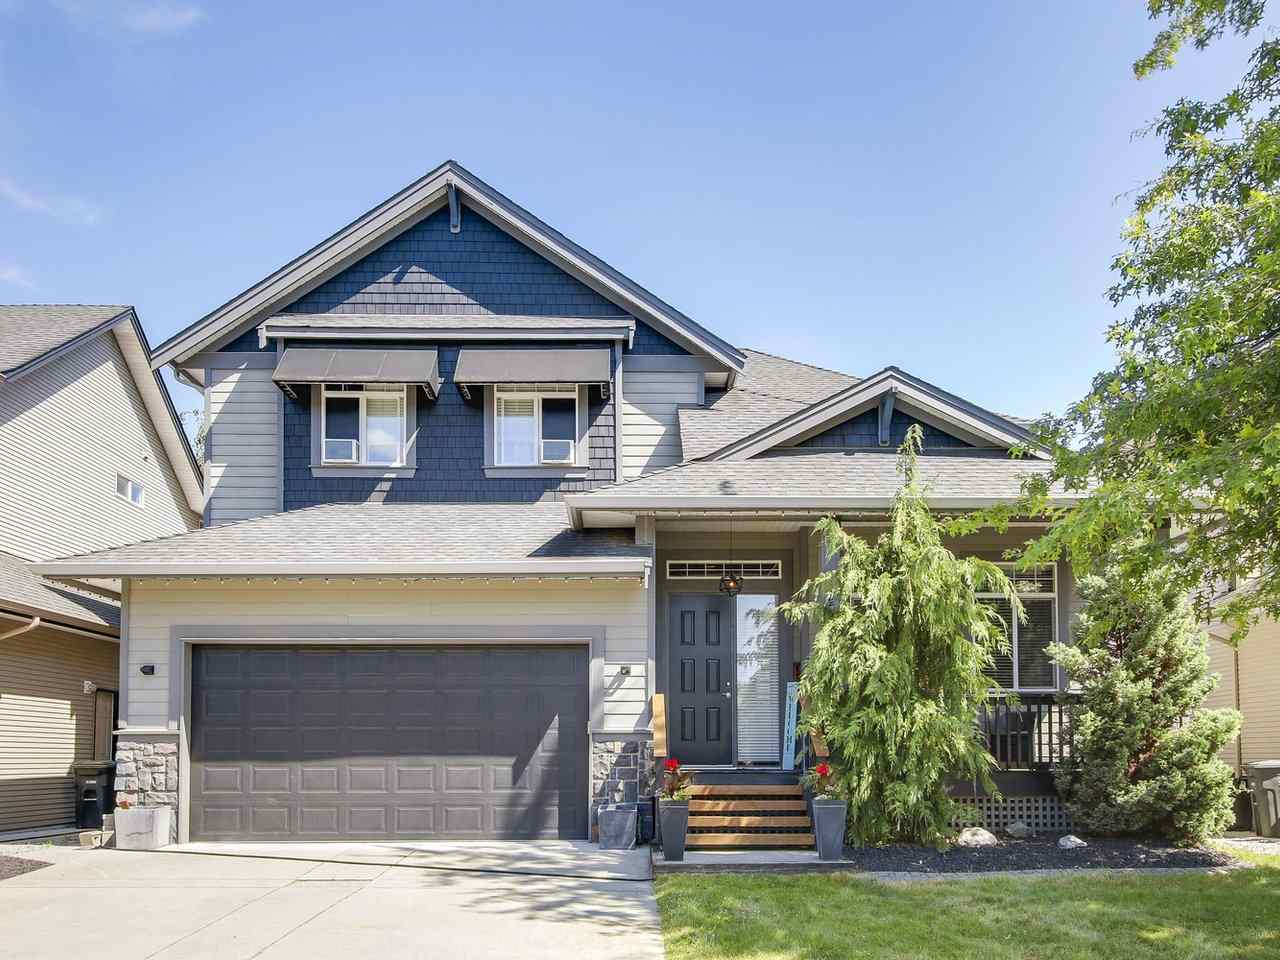 Detached at 11243 TULLY CRESCENT, Pitt Meadows, British Columbia. Image 1